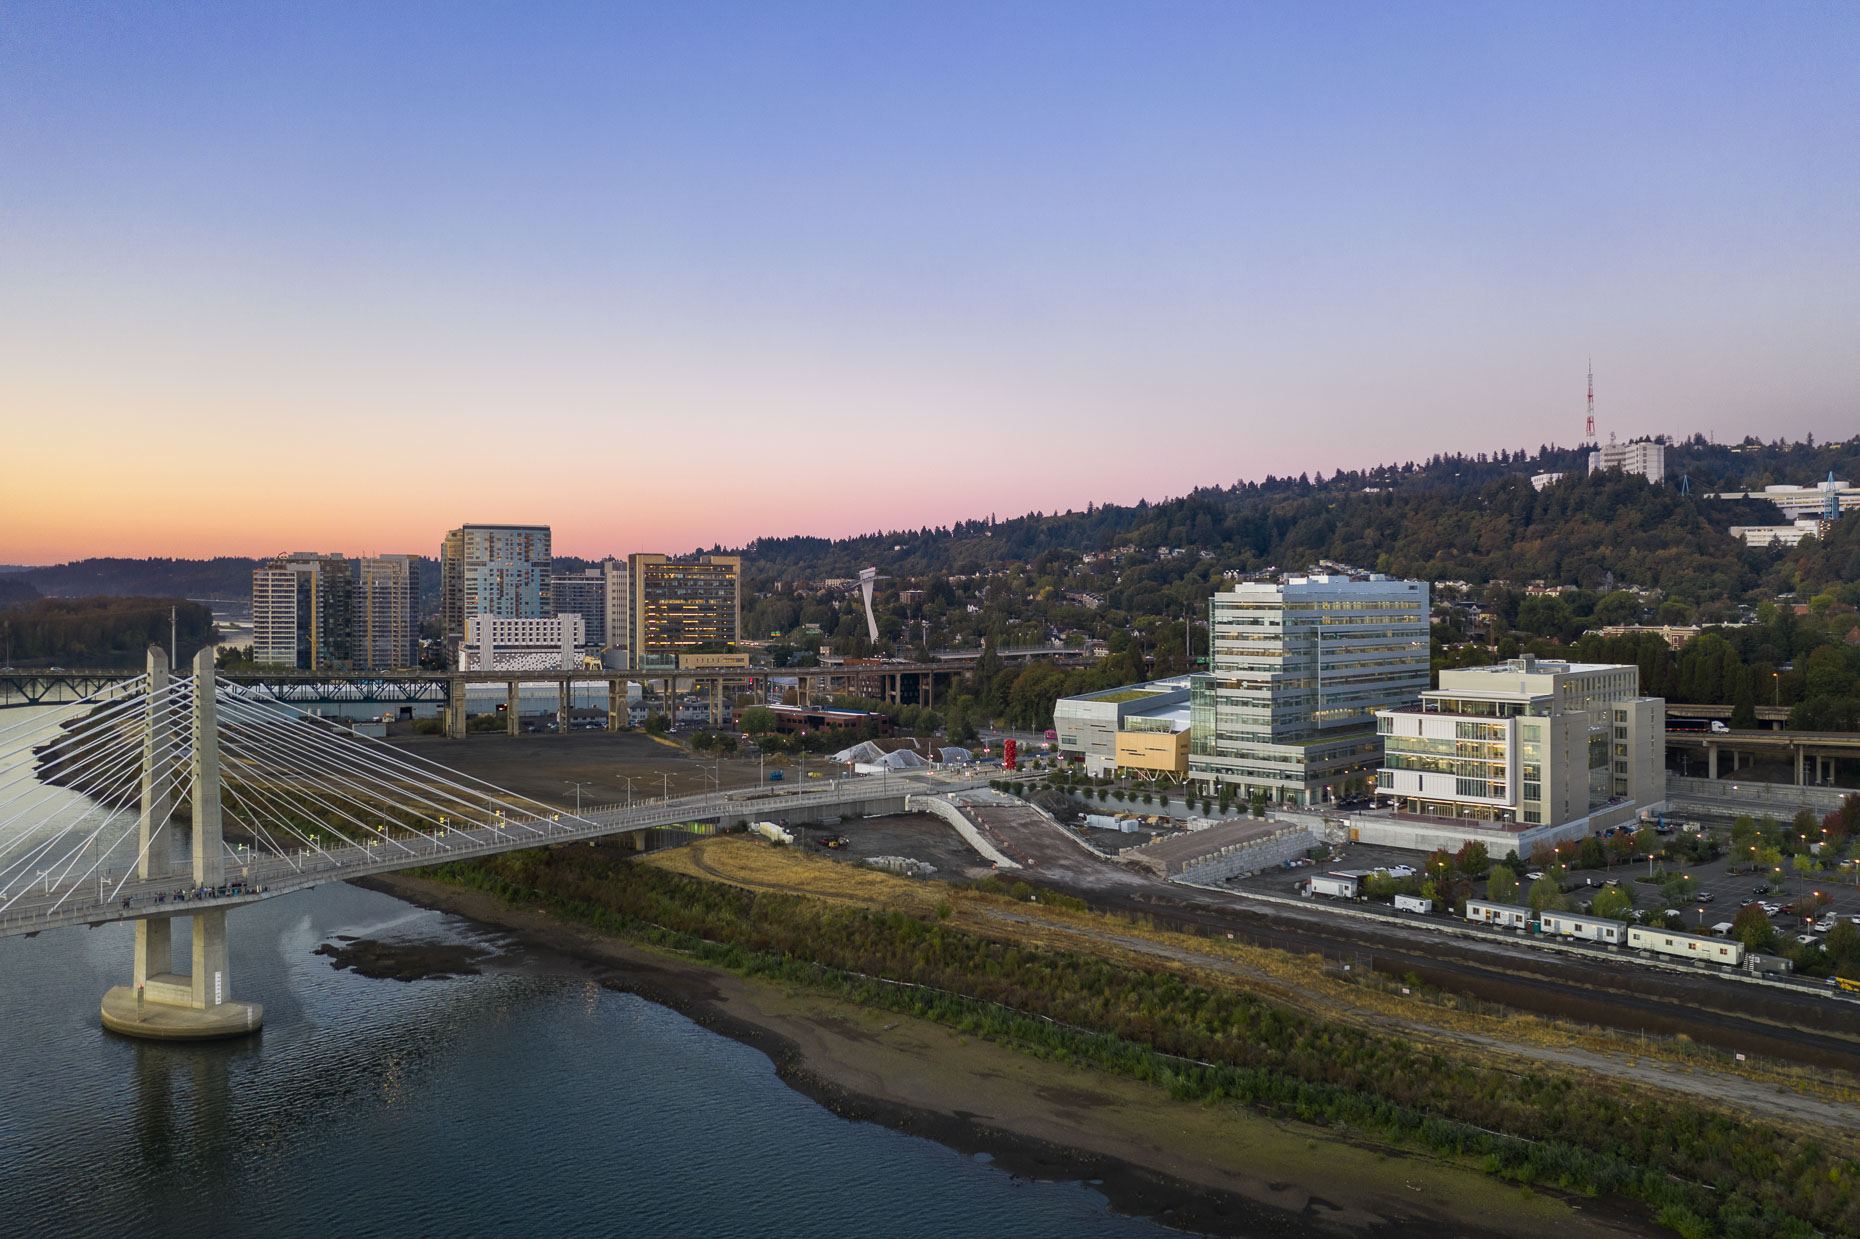 OHSU Knight Cancer Research Center by SRG Partnership photographed by Brad Feinknopf based in Columbus, Ohio